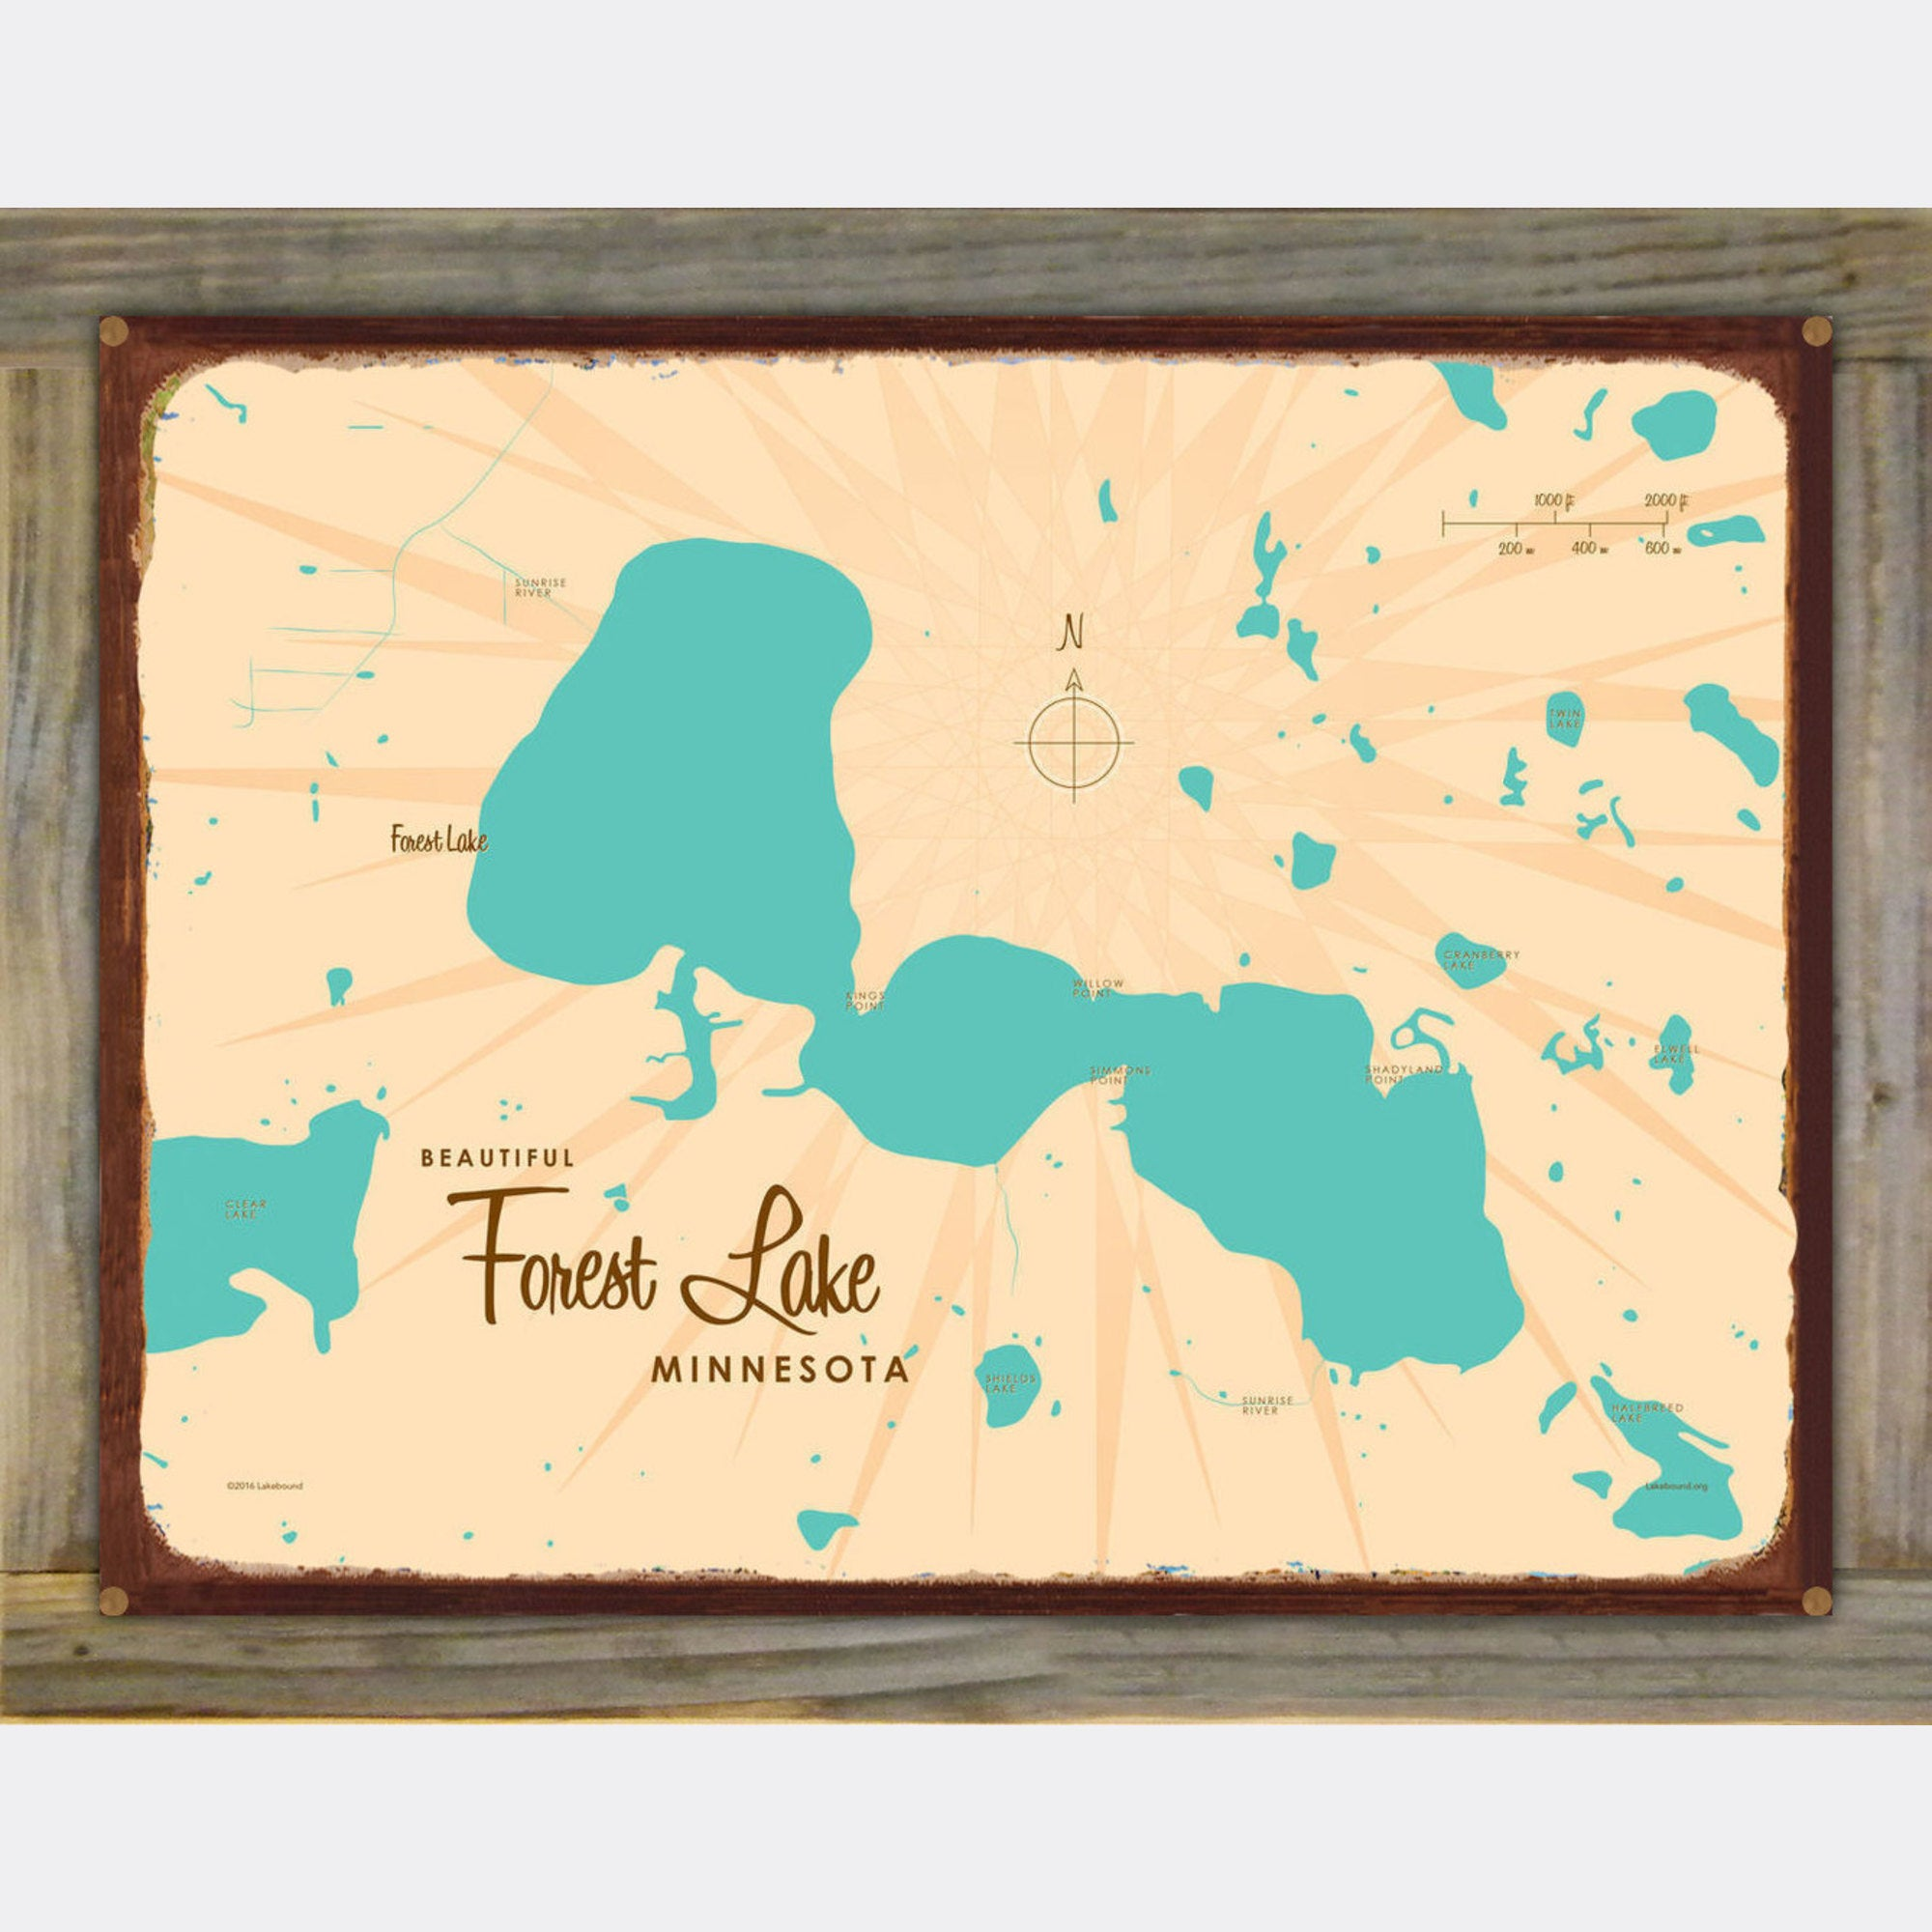 Forest Lake Minnesota, Wood-Mounted Rustic Metal Sign Map Art